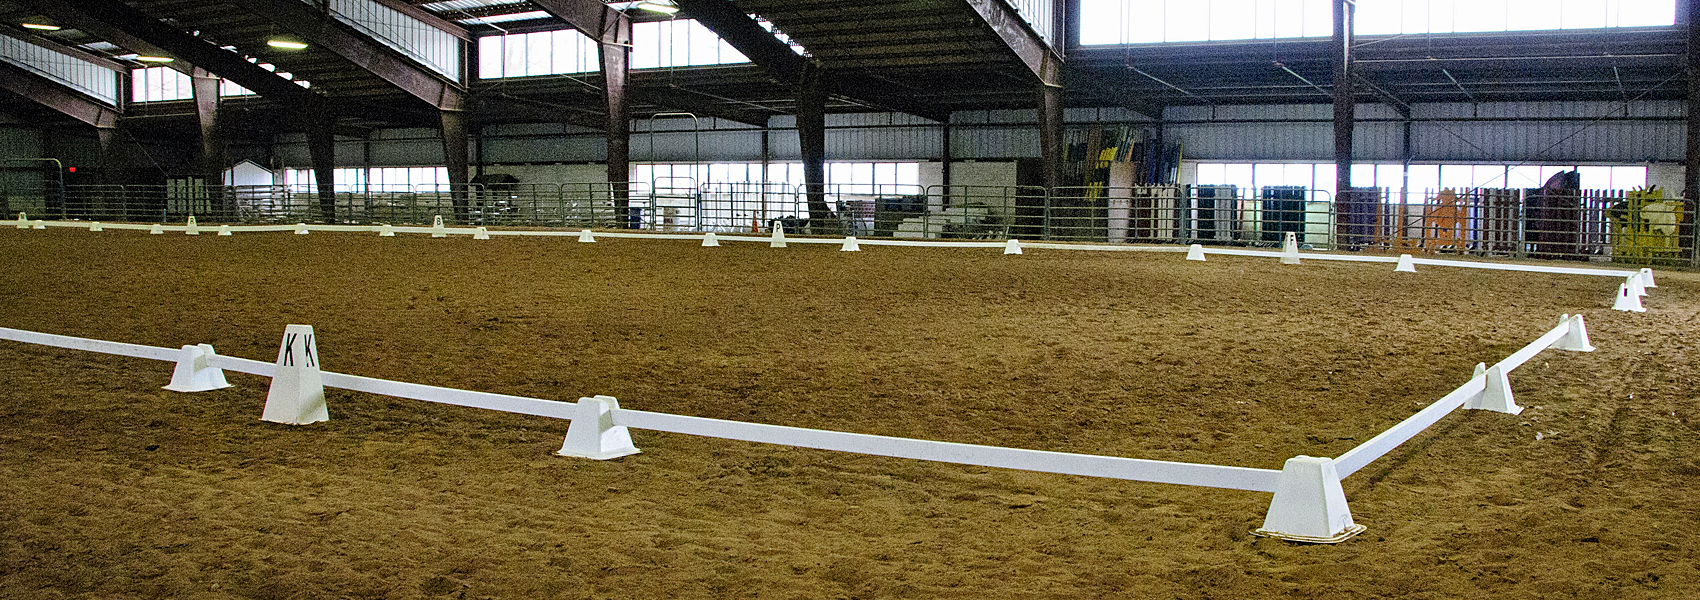 Riding area inside Frying Pan's equestrian barn